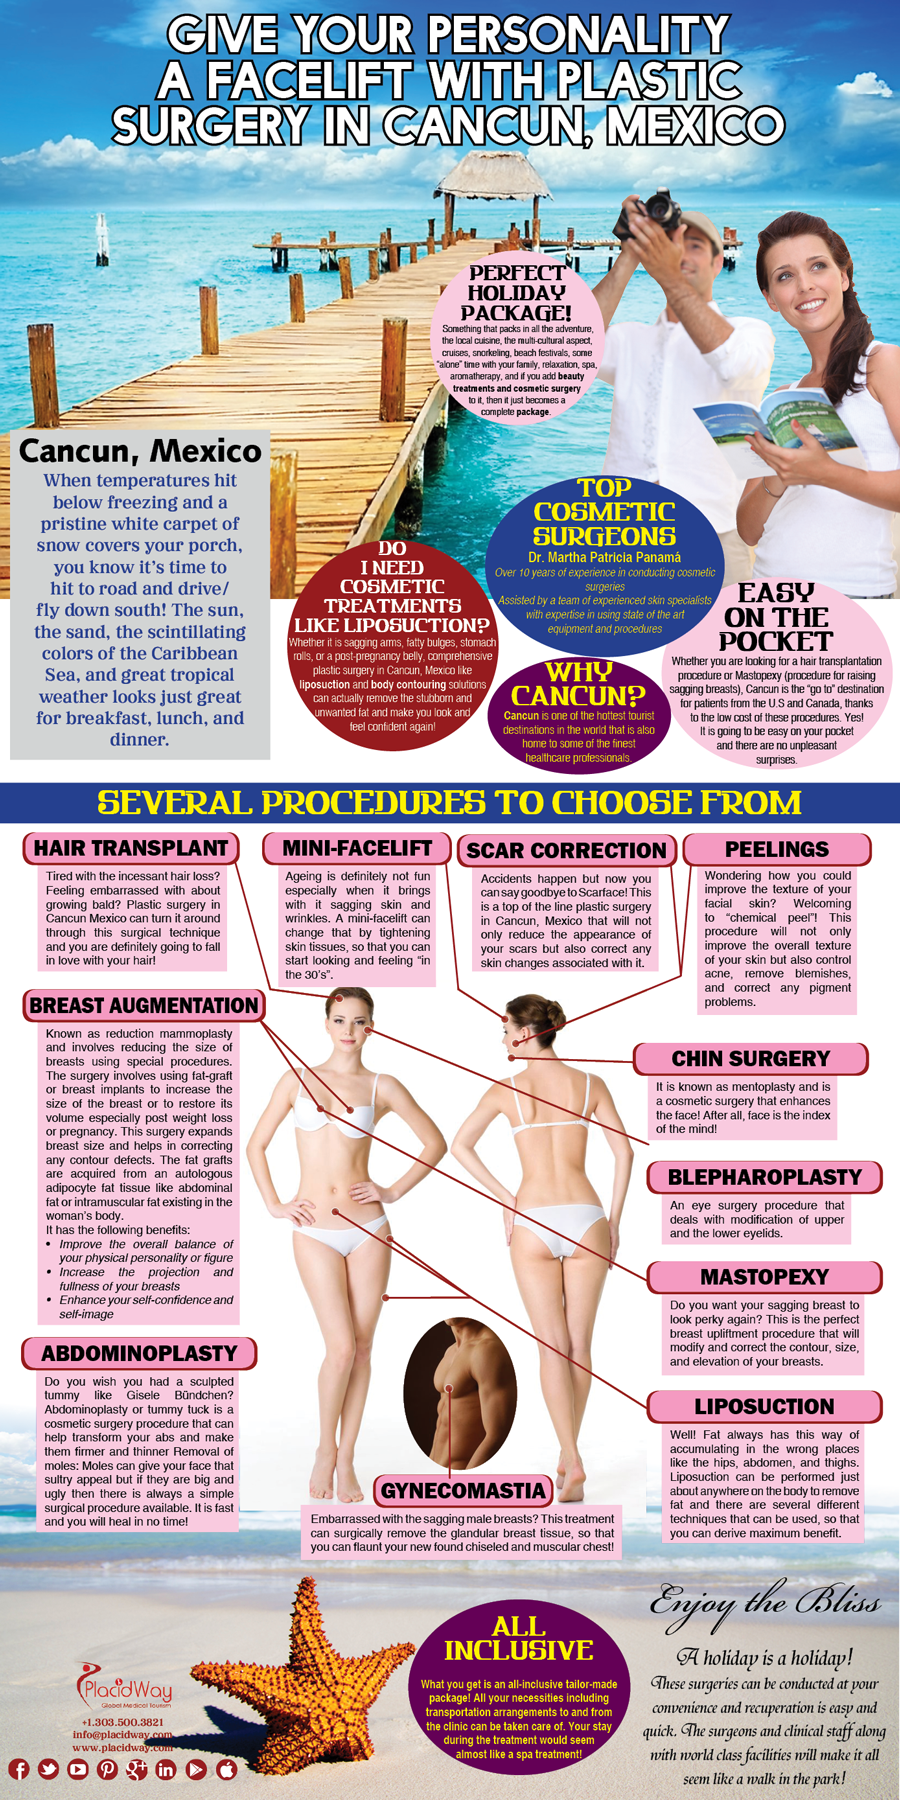 Infographics: Facelift with Plastic Surgery in Cancun Mexico